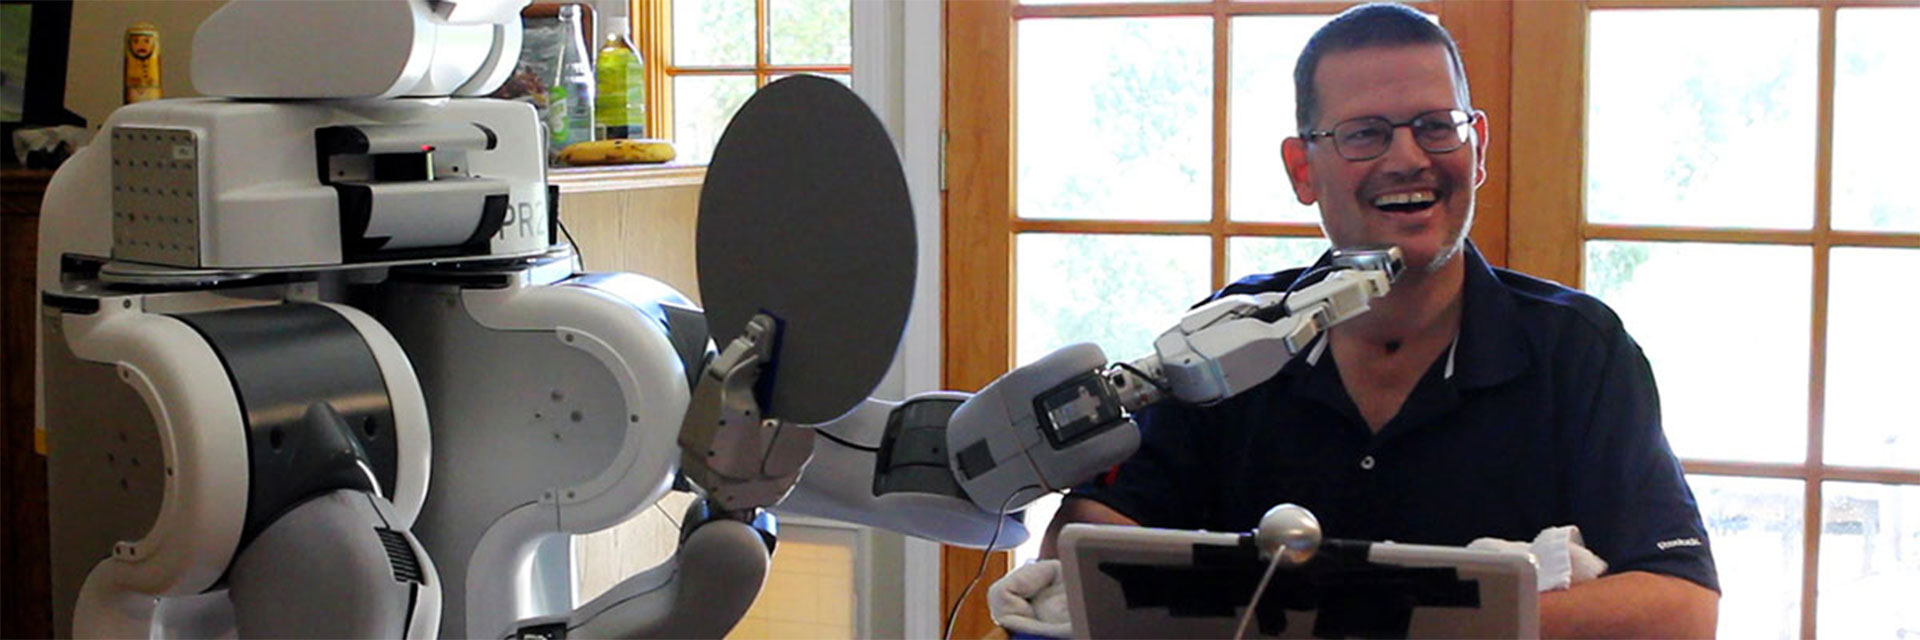 A quadriplegic man gets help shaving his face from a robot.